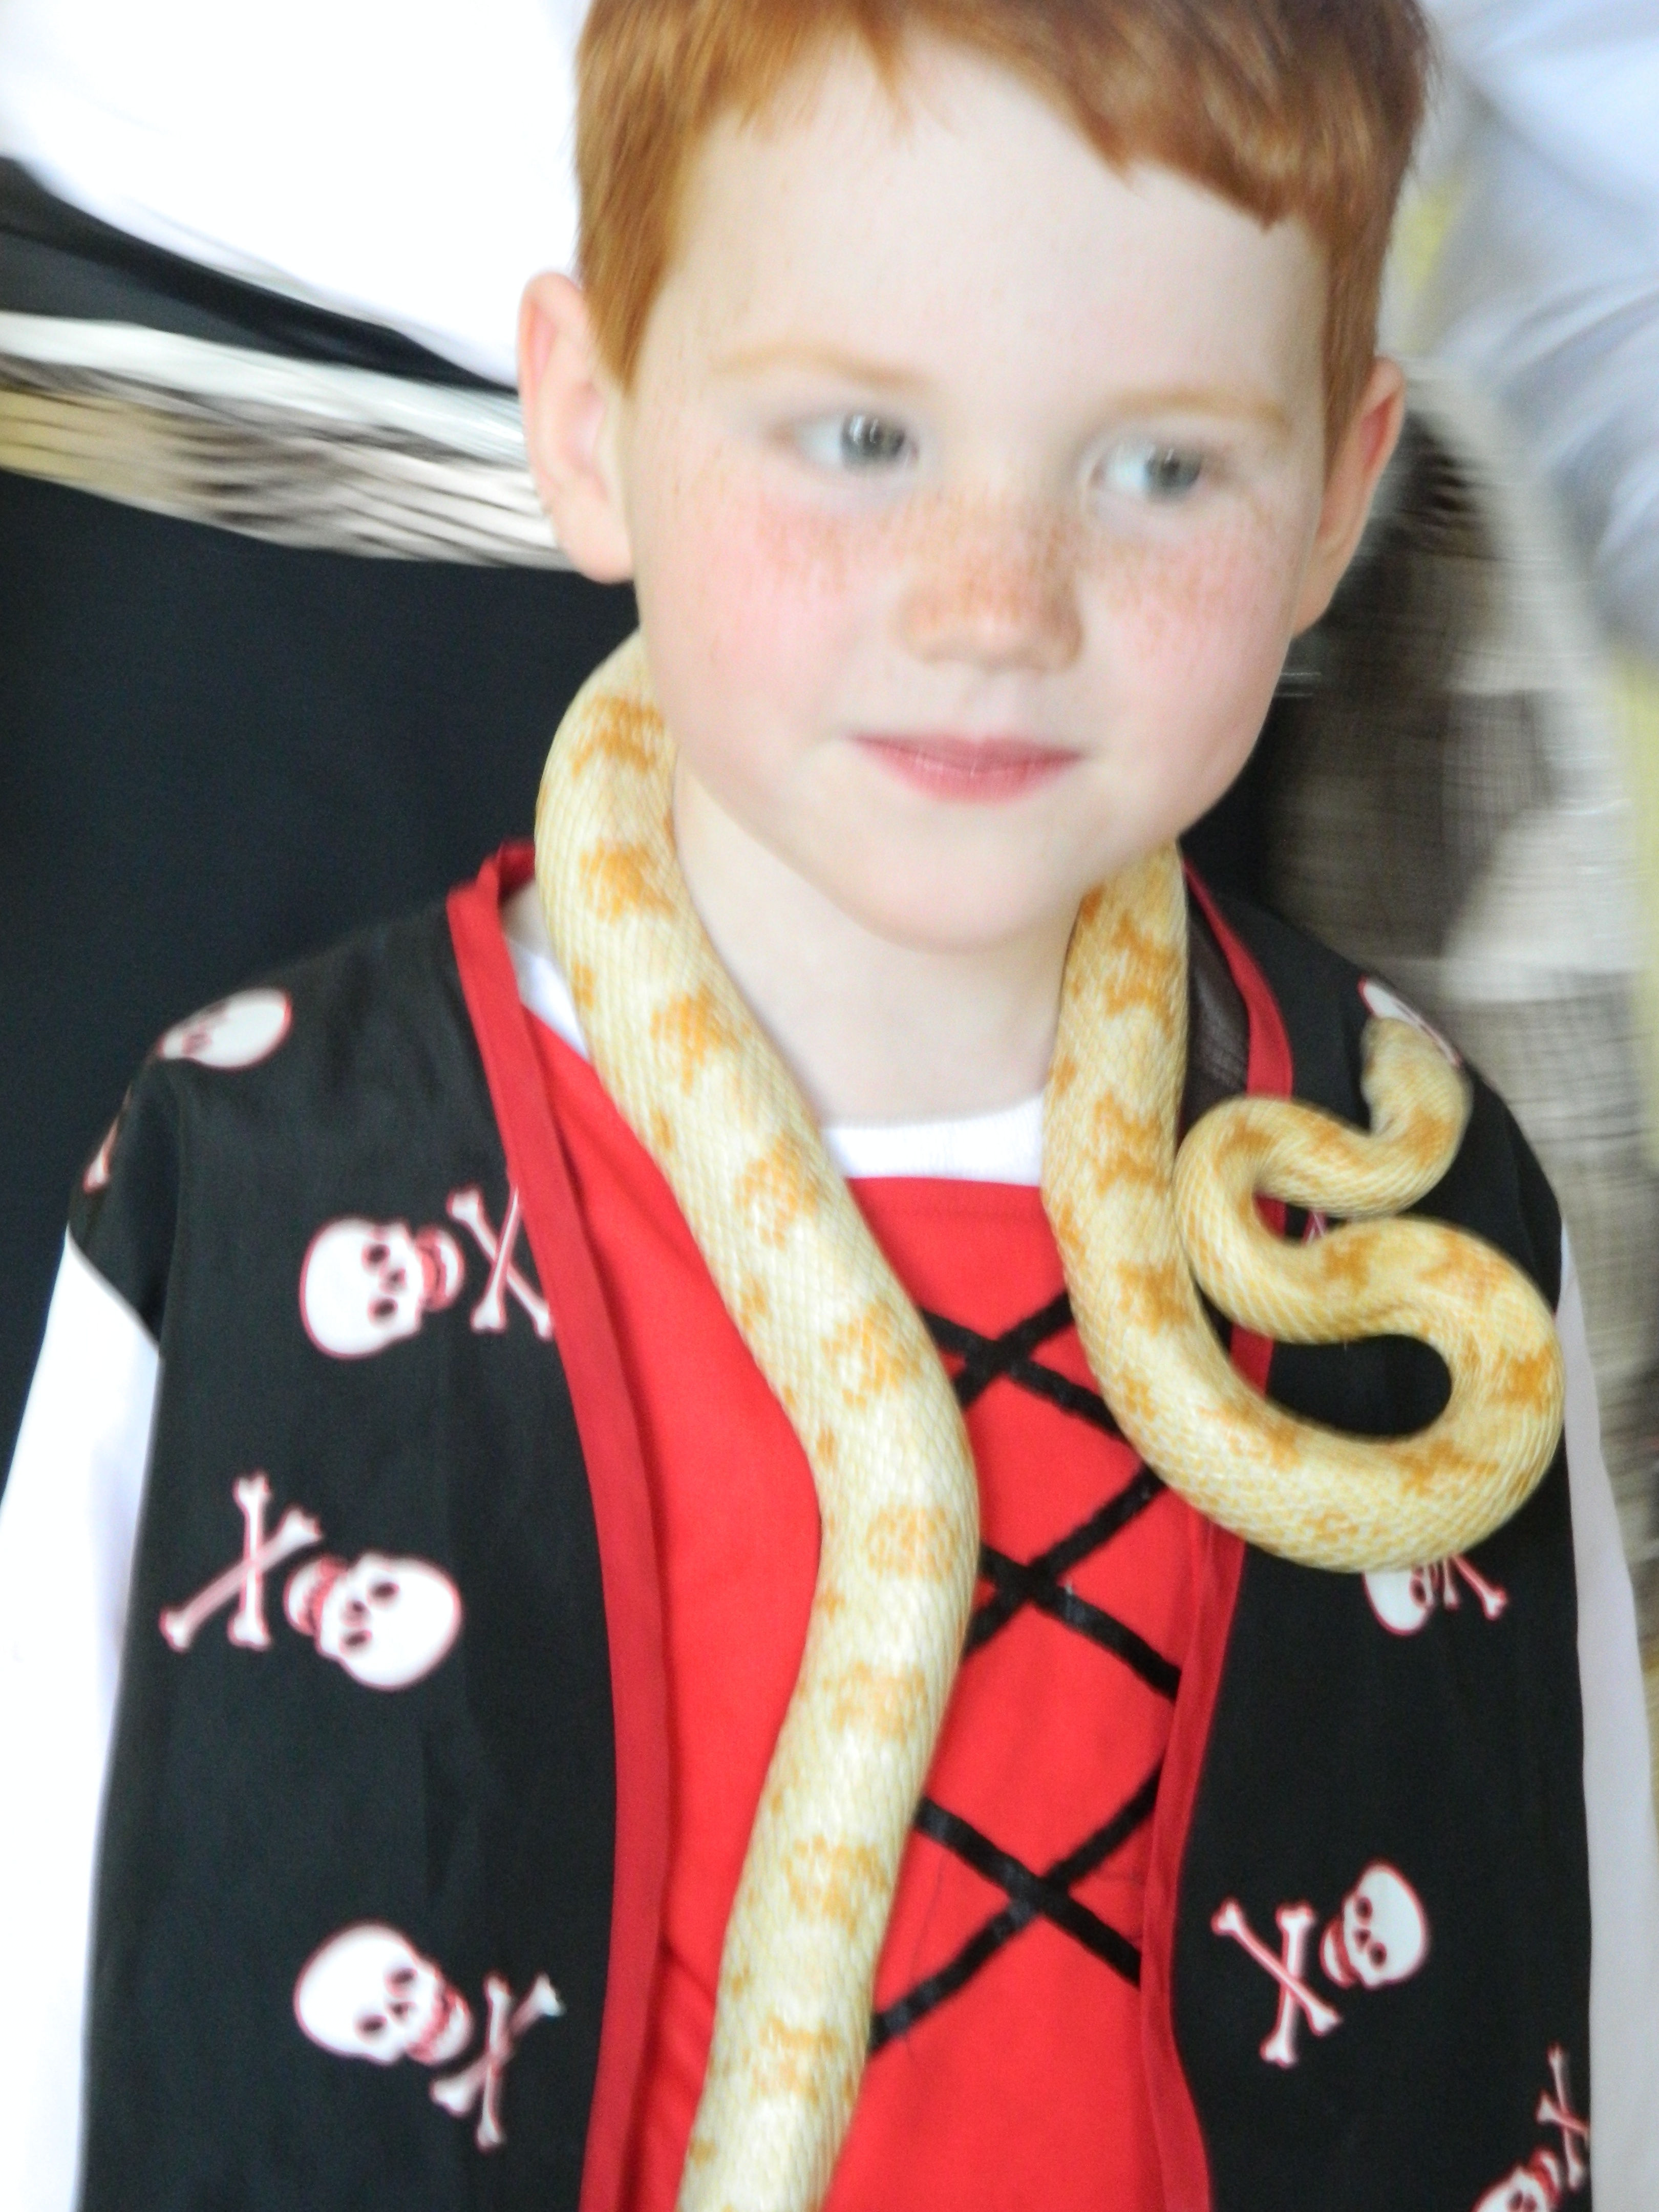 Kids Birthday Party Ayrshire Animal Man Mini Zoo Kids Parties - Childrens birthday party ideas edinburgh